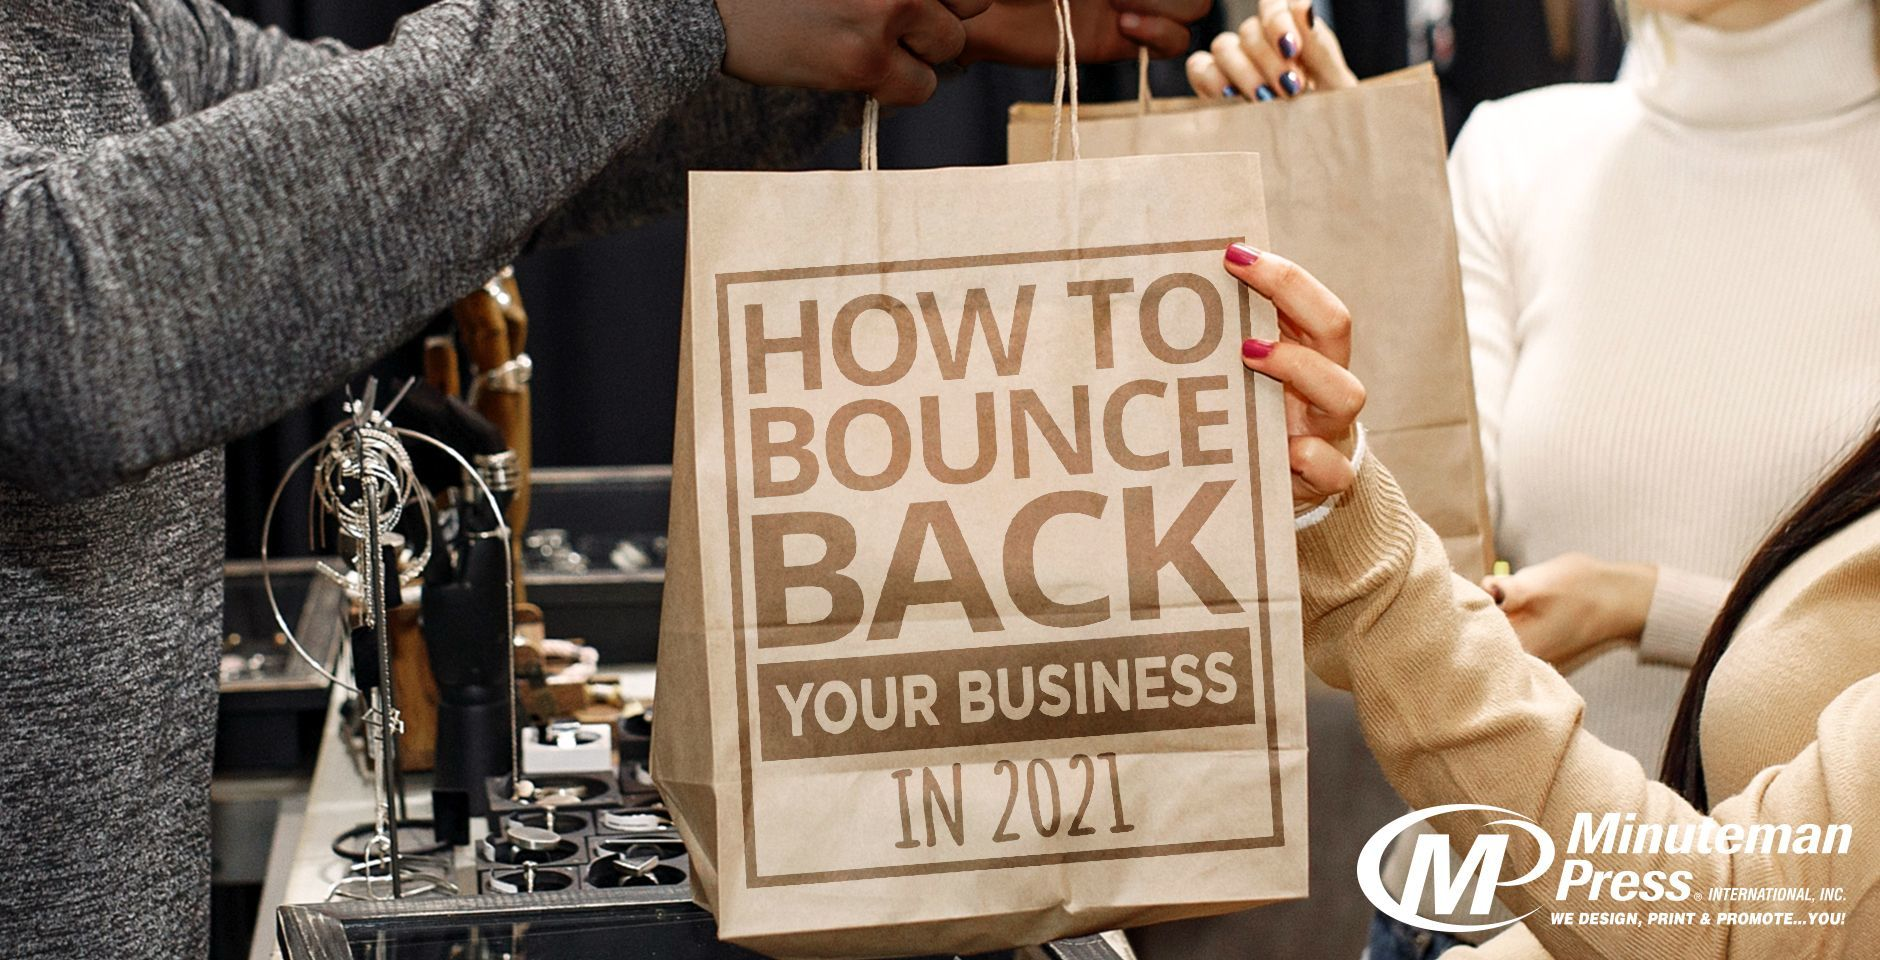 Free Marketing EBook: How to Bounce Back Your Business in 2021